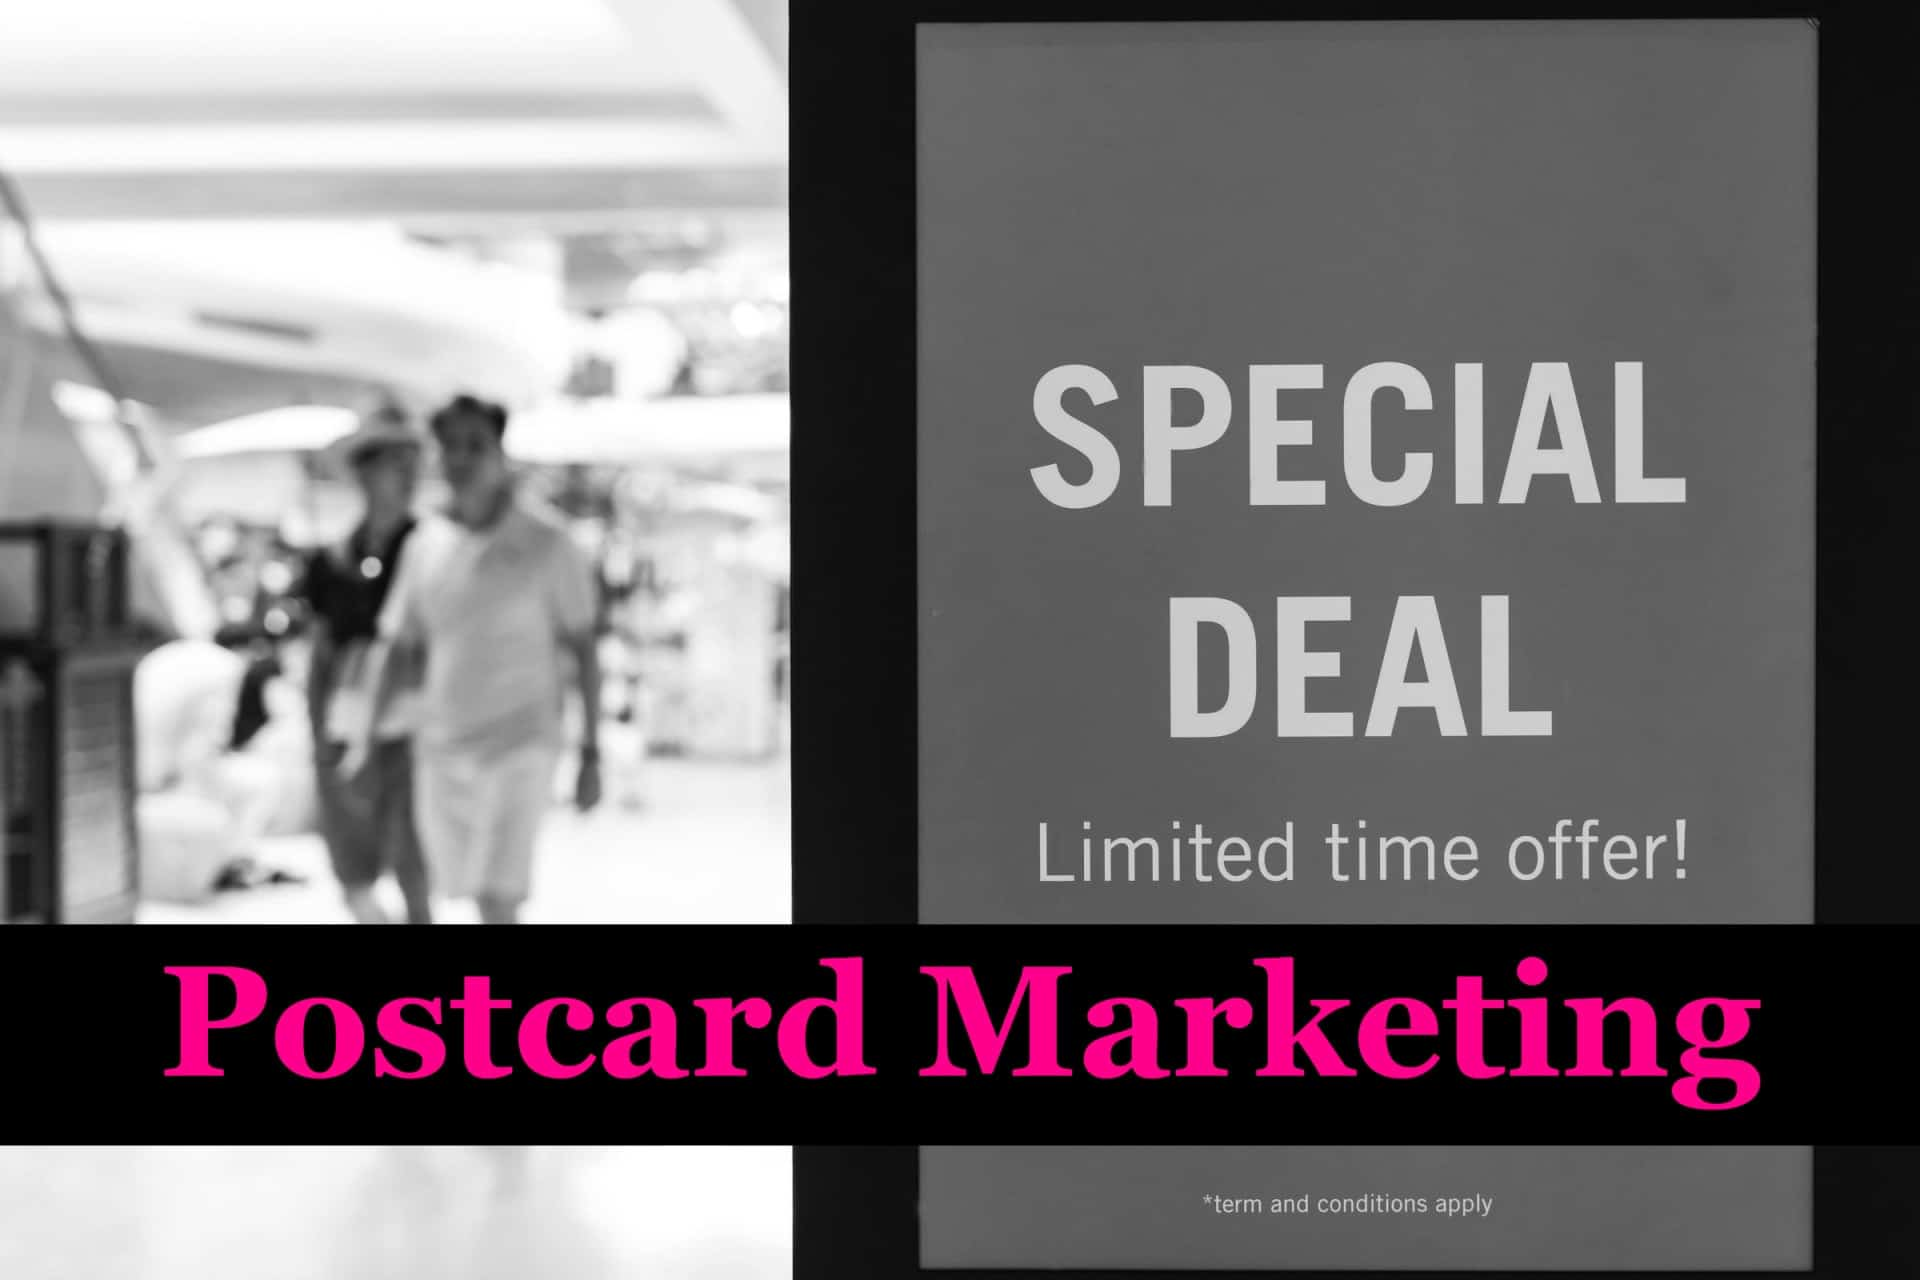 A postcard marketing a special deal